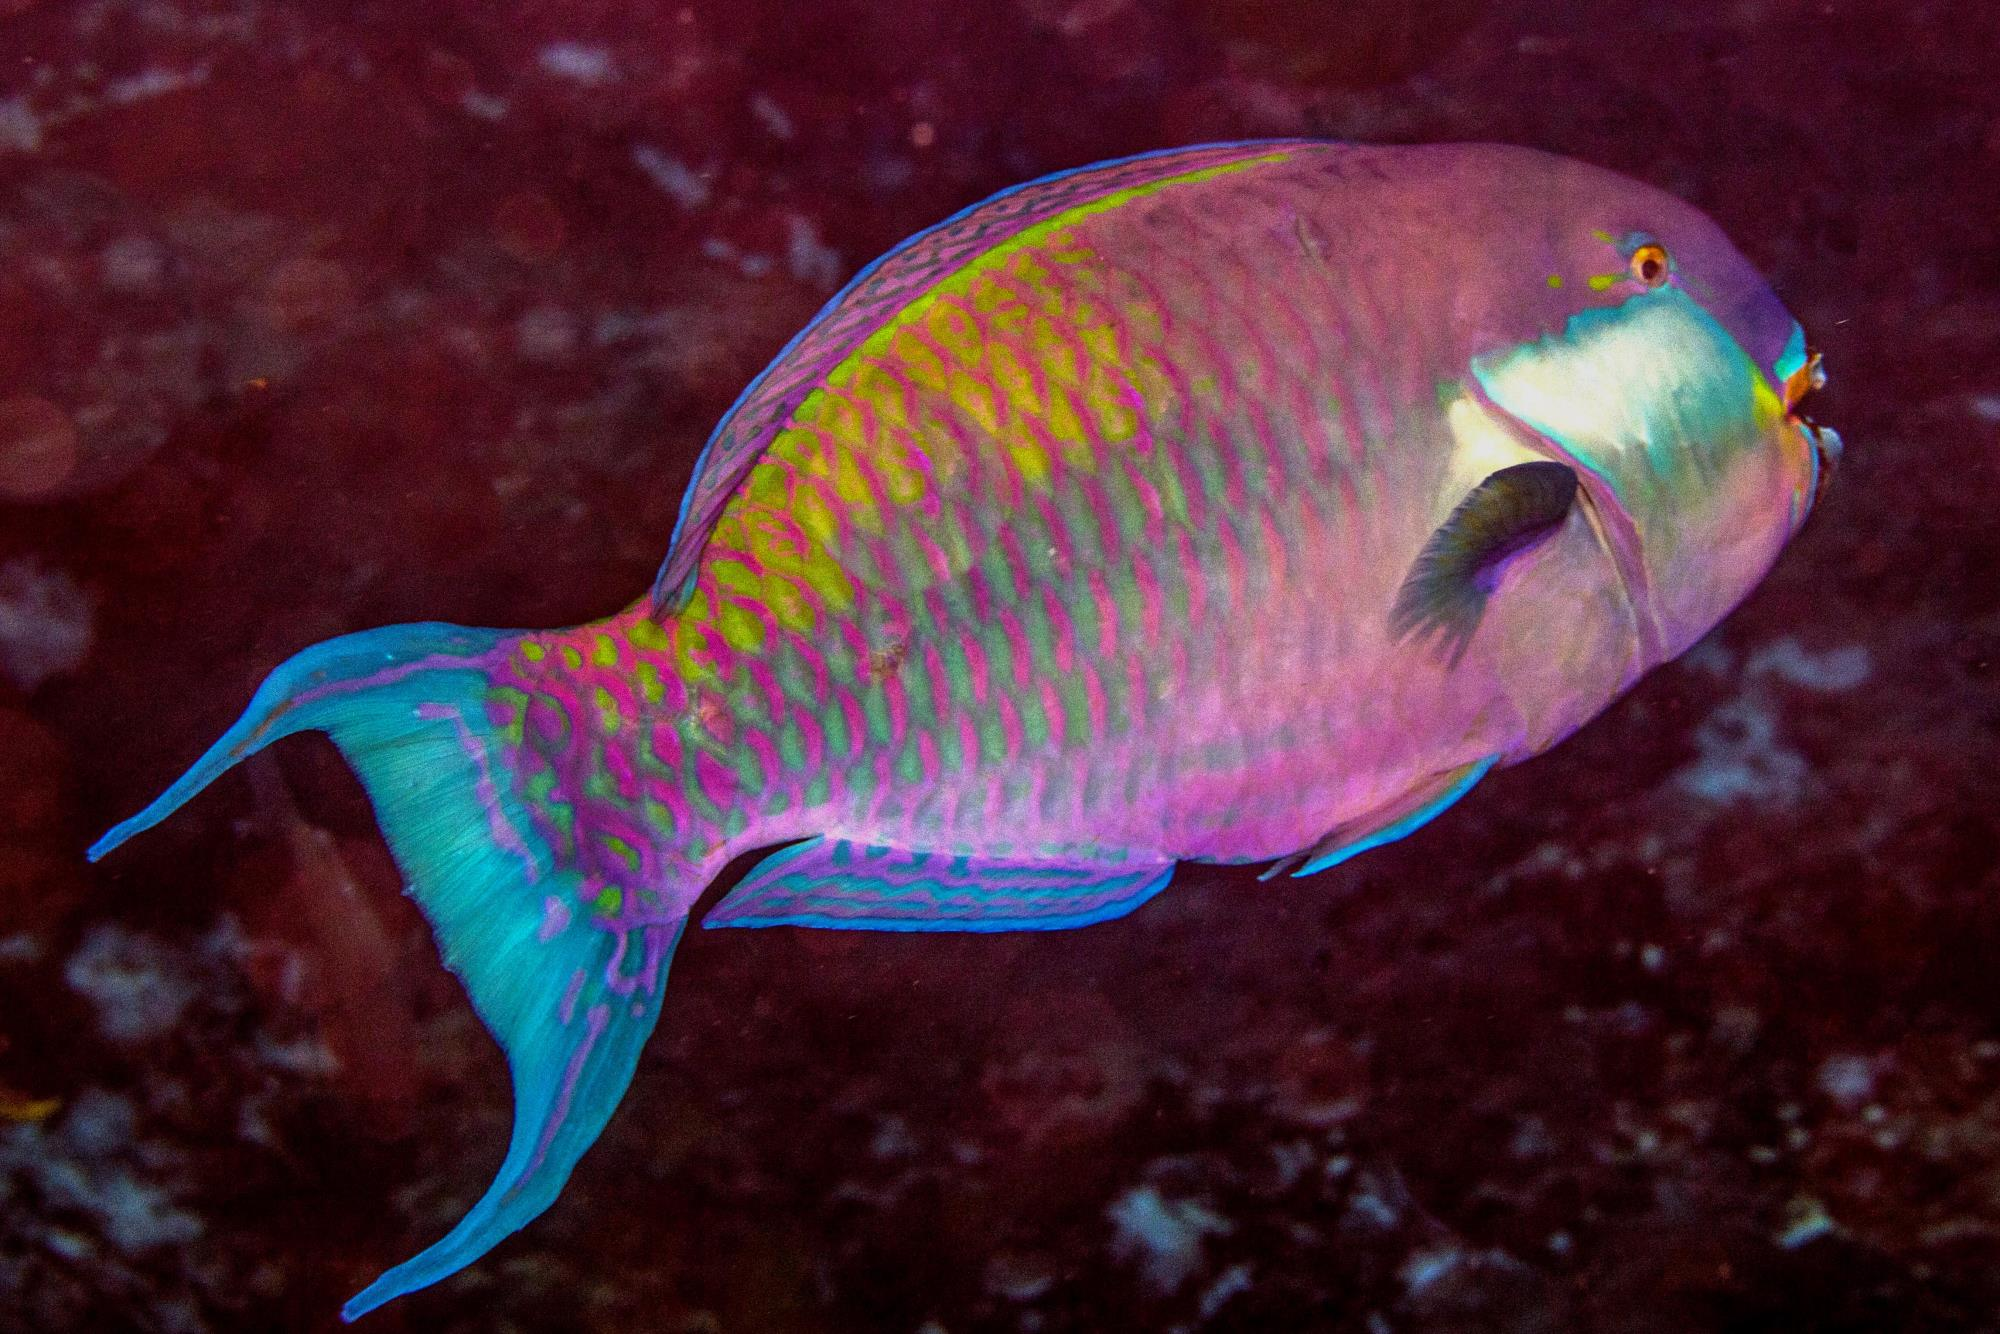 Terminal Phase male parrotfish (Chlorurus strongylocephalus) also known as the Rounhead Parrotfish